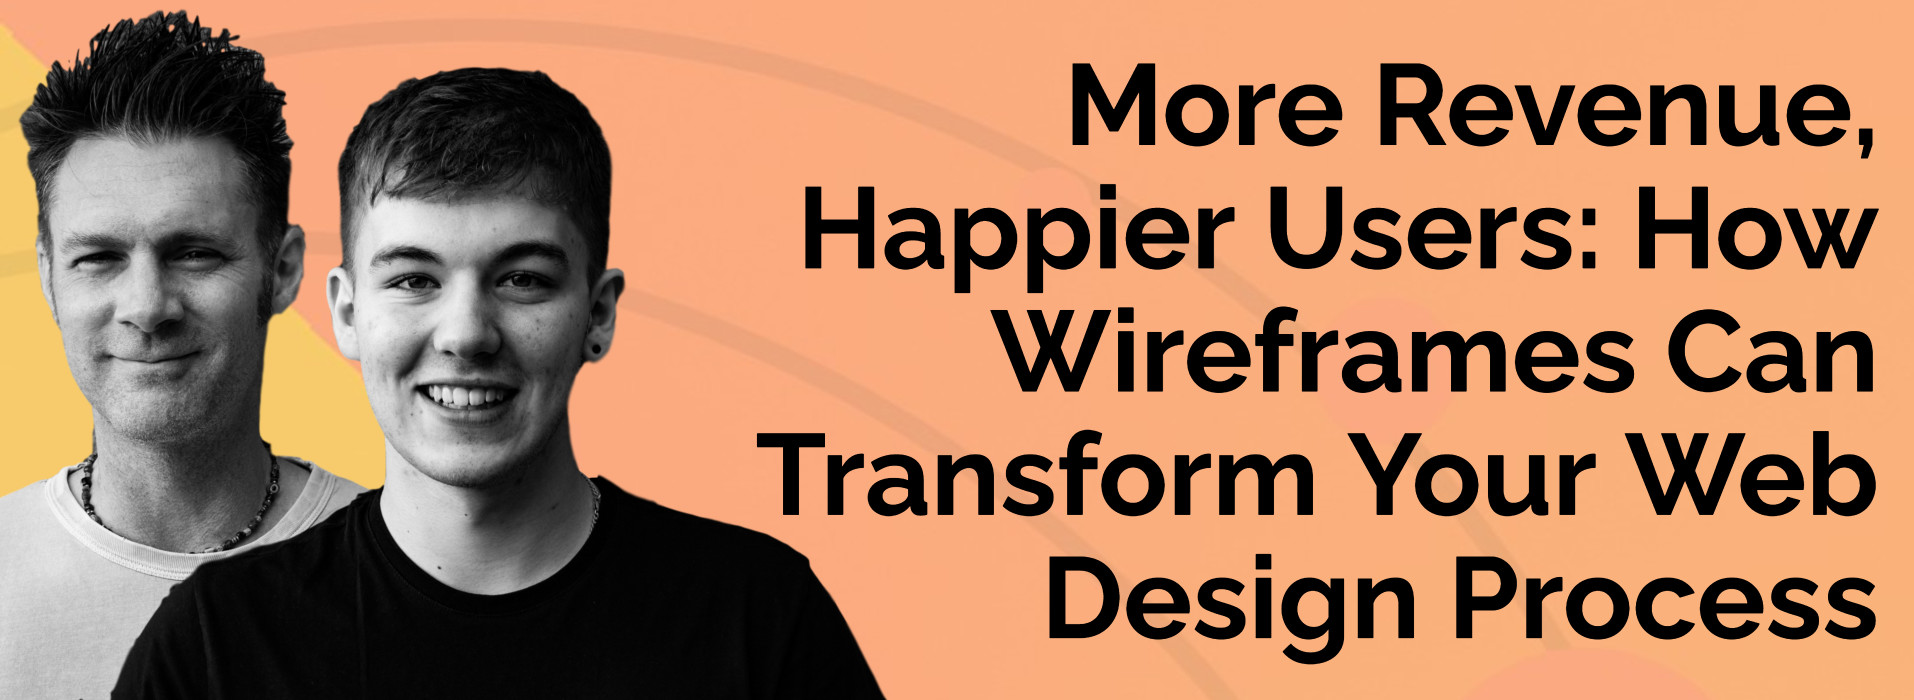 More Revenue Happier Users - How Wireframes Can Transform Your Web Design Process